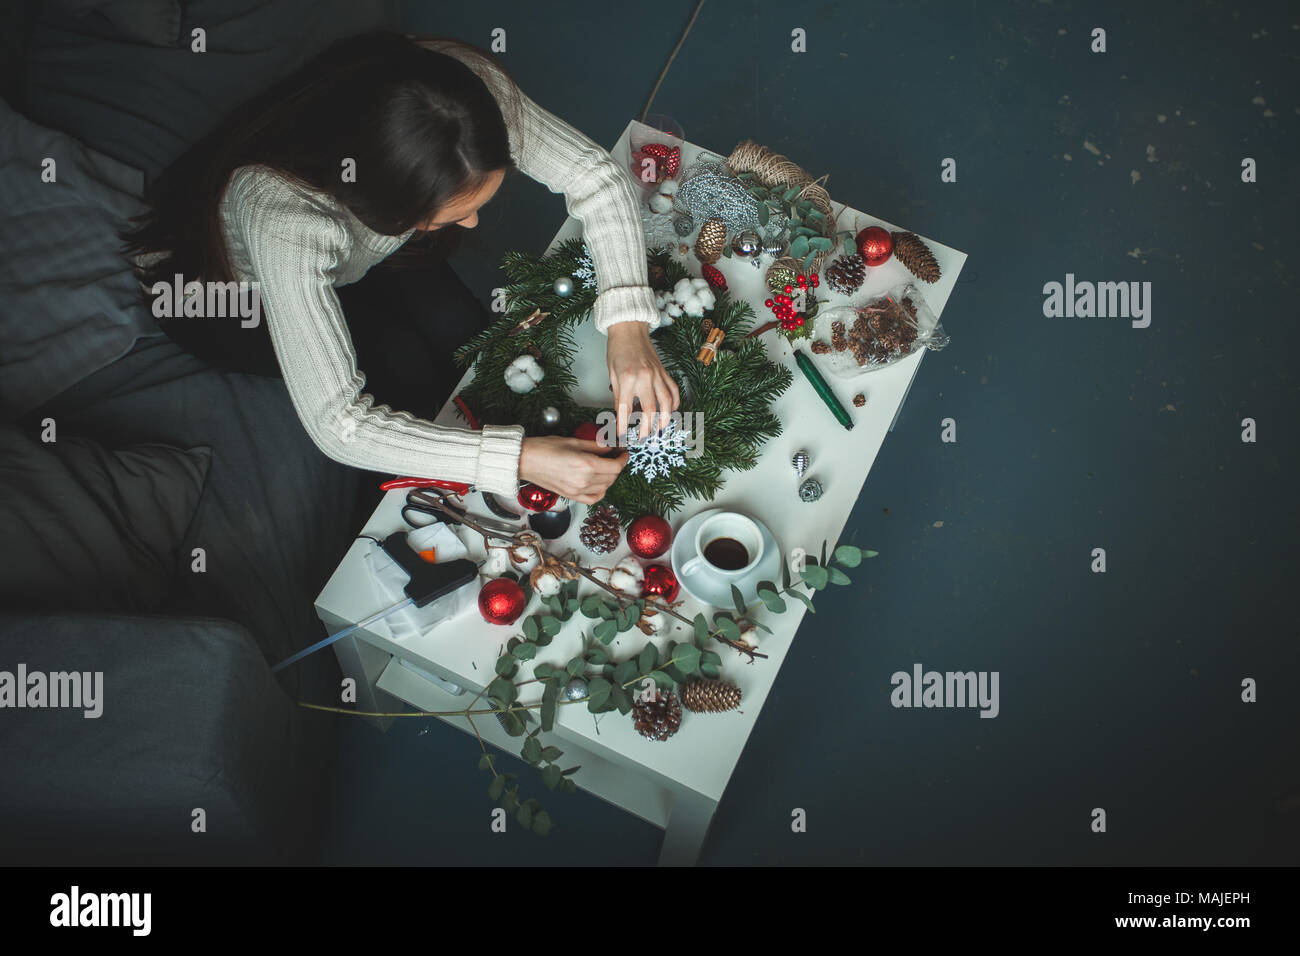 florist woman making christmas decorations at home office desk - Office Desk Christmas Decorations